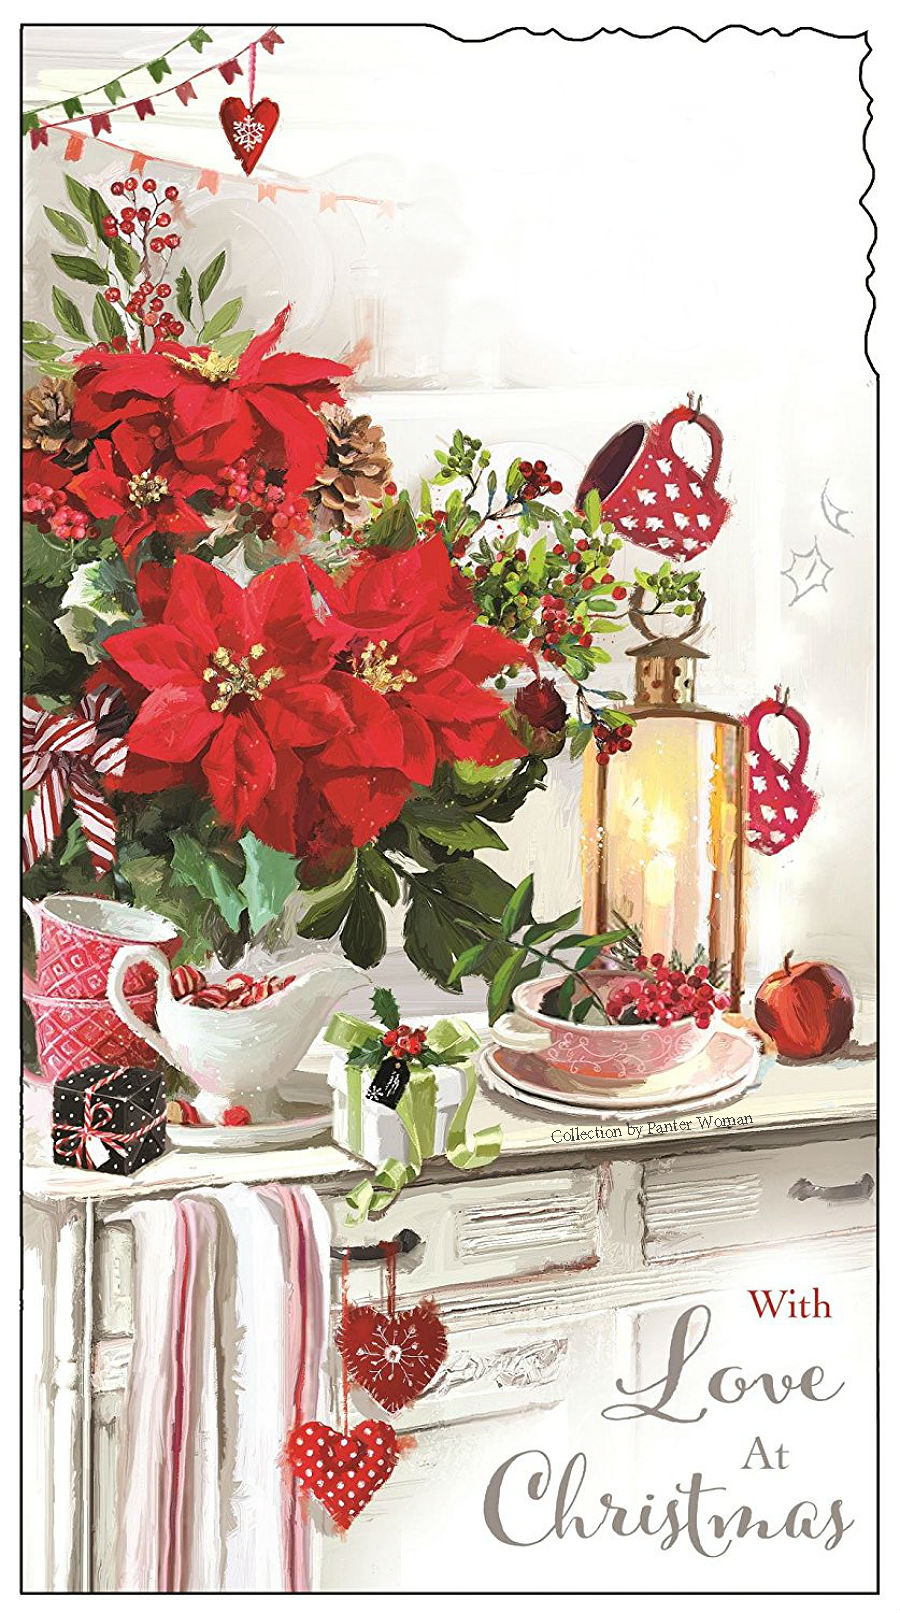 Jonny-Javelin-Red-Poinsettia-Special-Sister-With-Love-At-Christmas-Card-B074Y614M6.png